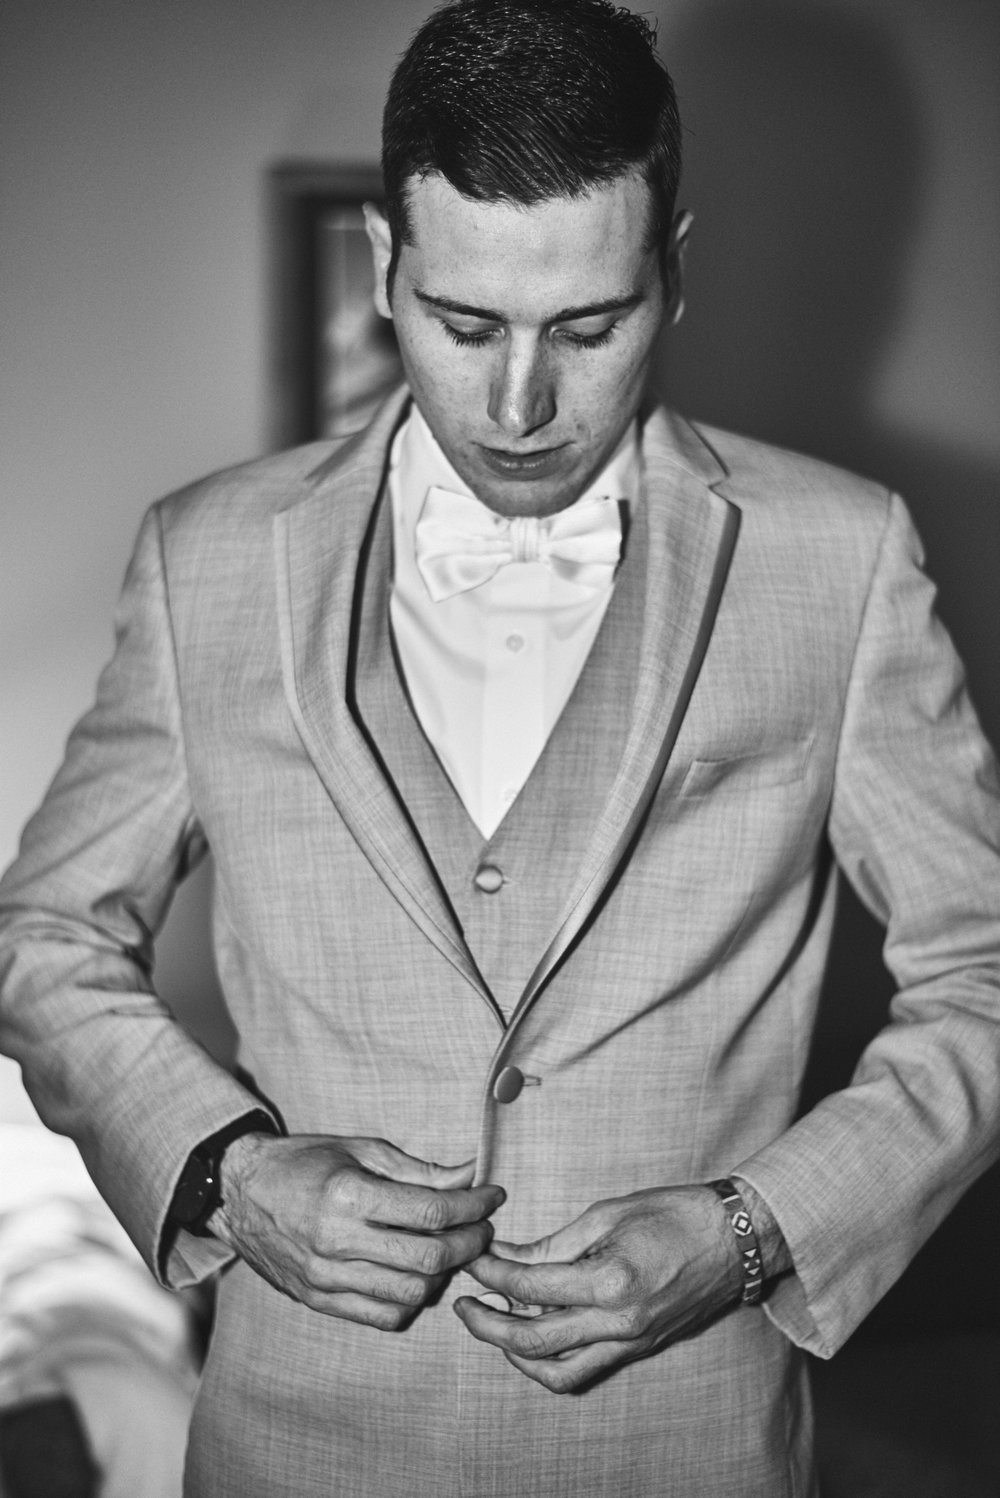 Wedding Photography by Cate Bligh, groom getting ready at Mountain Edge Resort and Spa in Newbury, NH